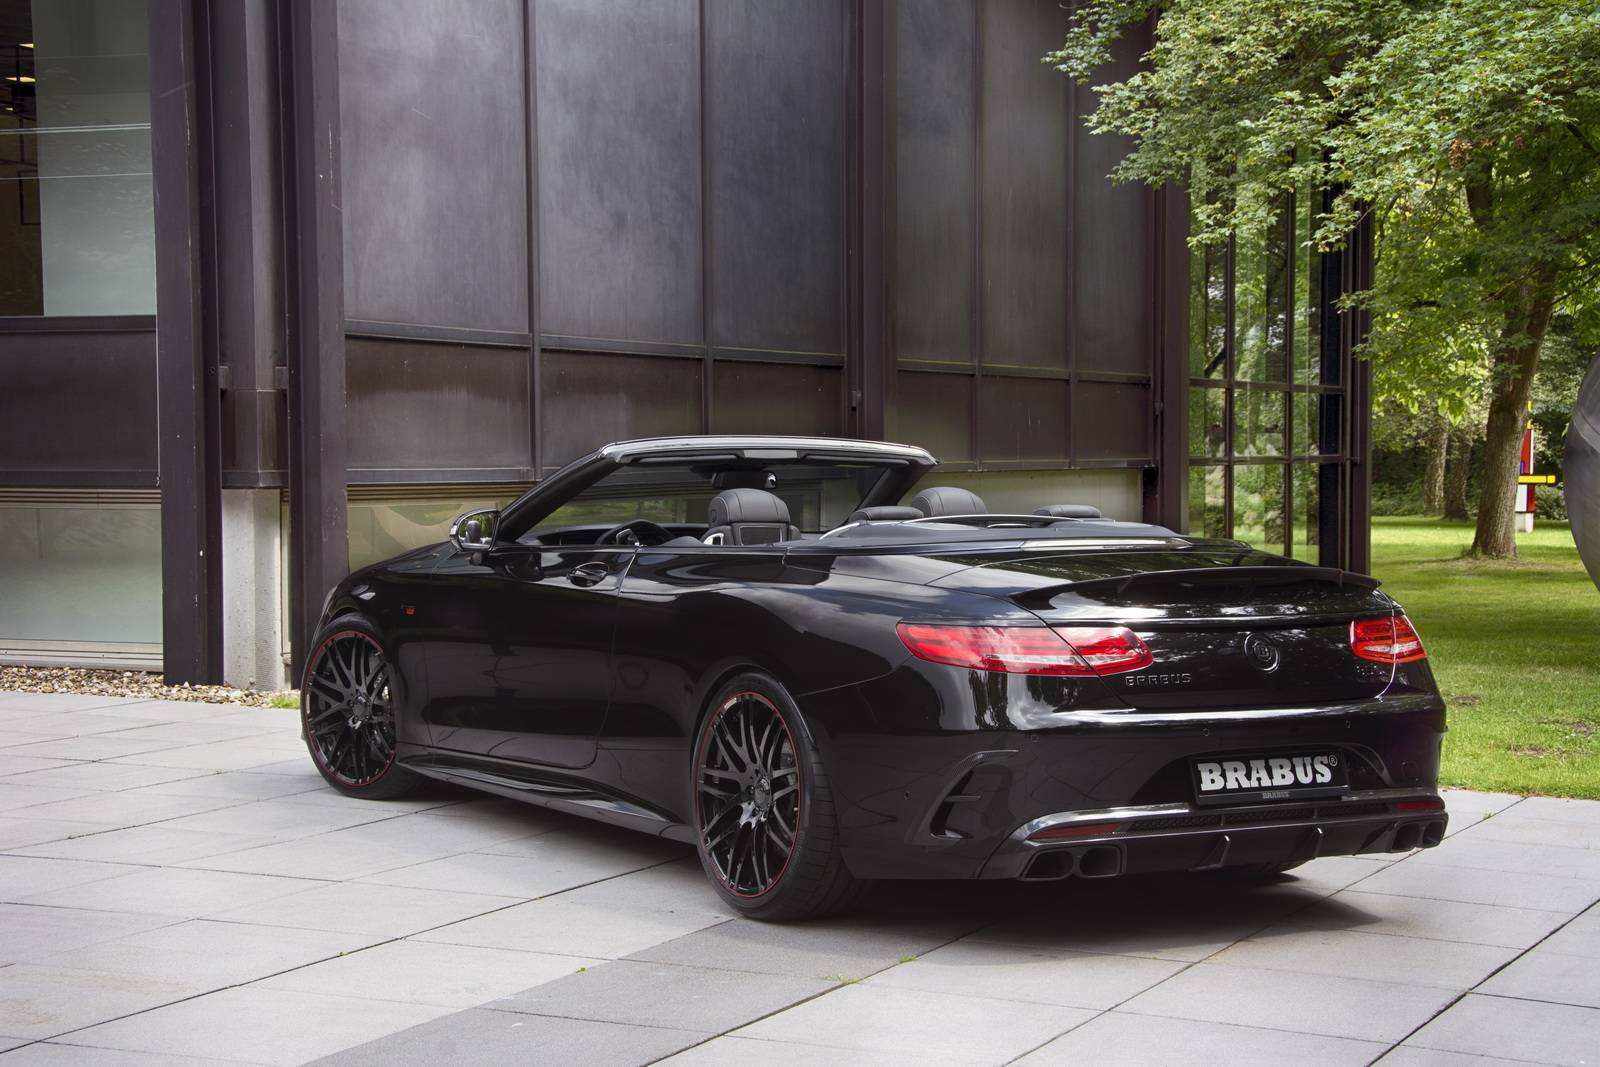 https://www.supercars.net/blog/wp-content/uploads/2016/06/Brabus-Mercedes-Benz-S63-AMG-Cabriolet-13.jpg